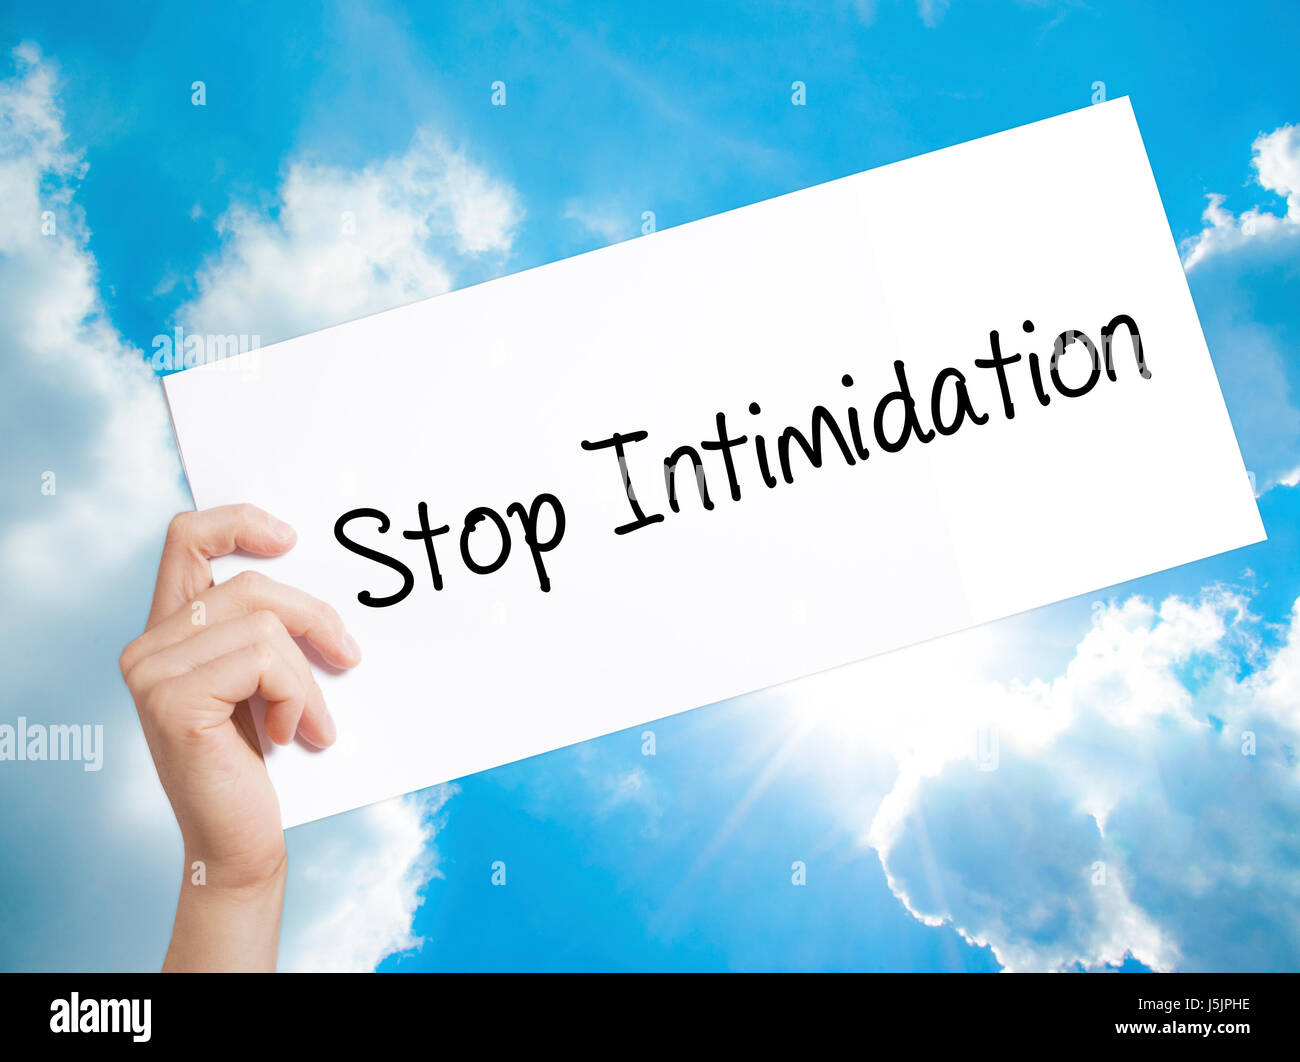 Stop Intimidation Sign on white paper. Man Hand Holding Paper with text. Isolated on sky background.  Business concept. - Stock Image